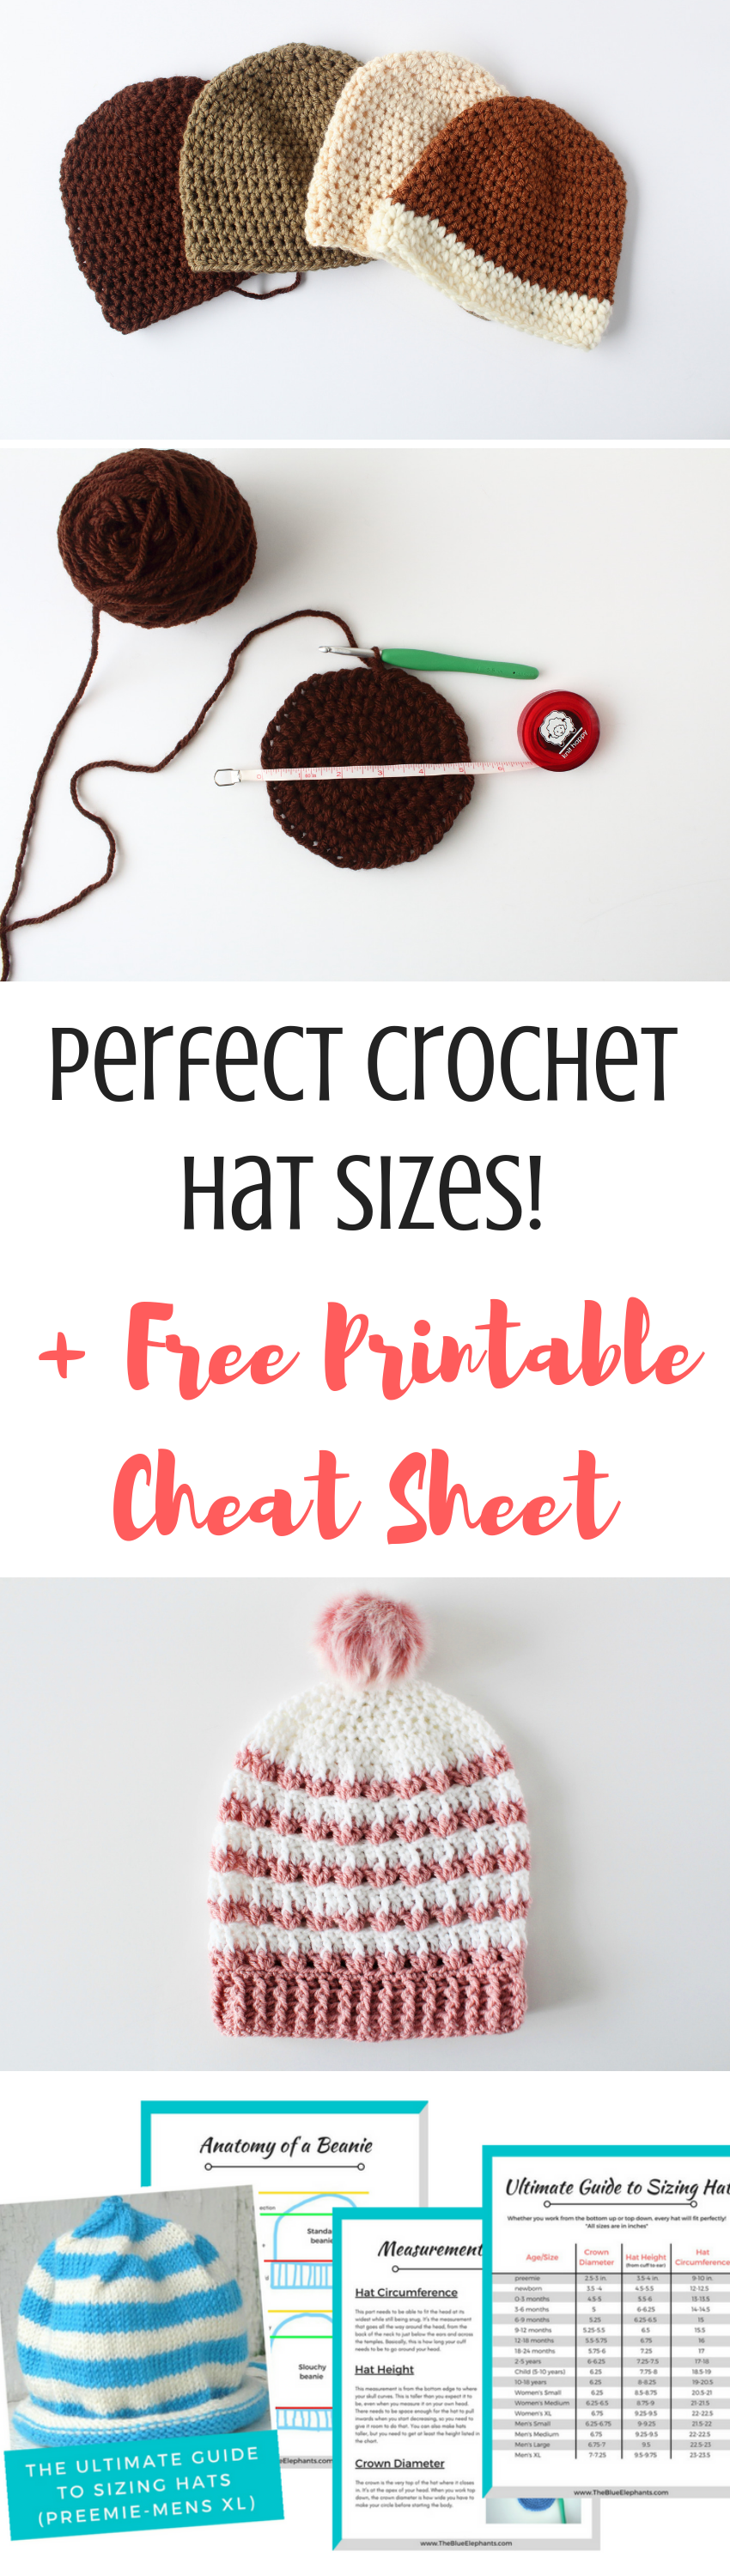 How to Crochet Hat Sizes in 3 Easy Steps + Hat Sizing Freebie   hats ...